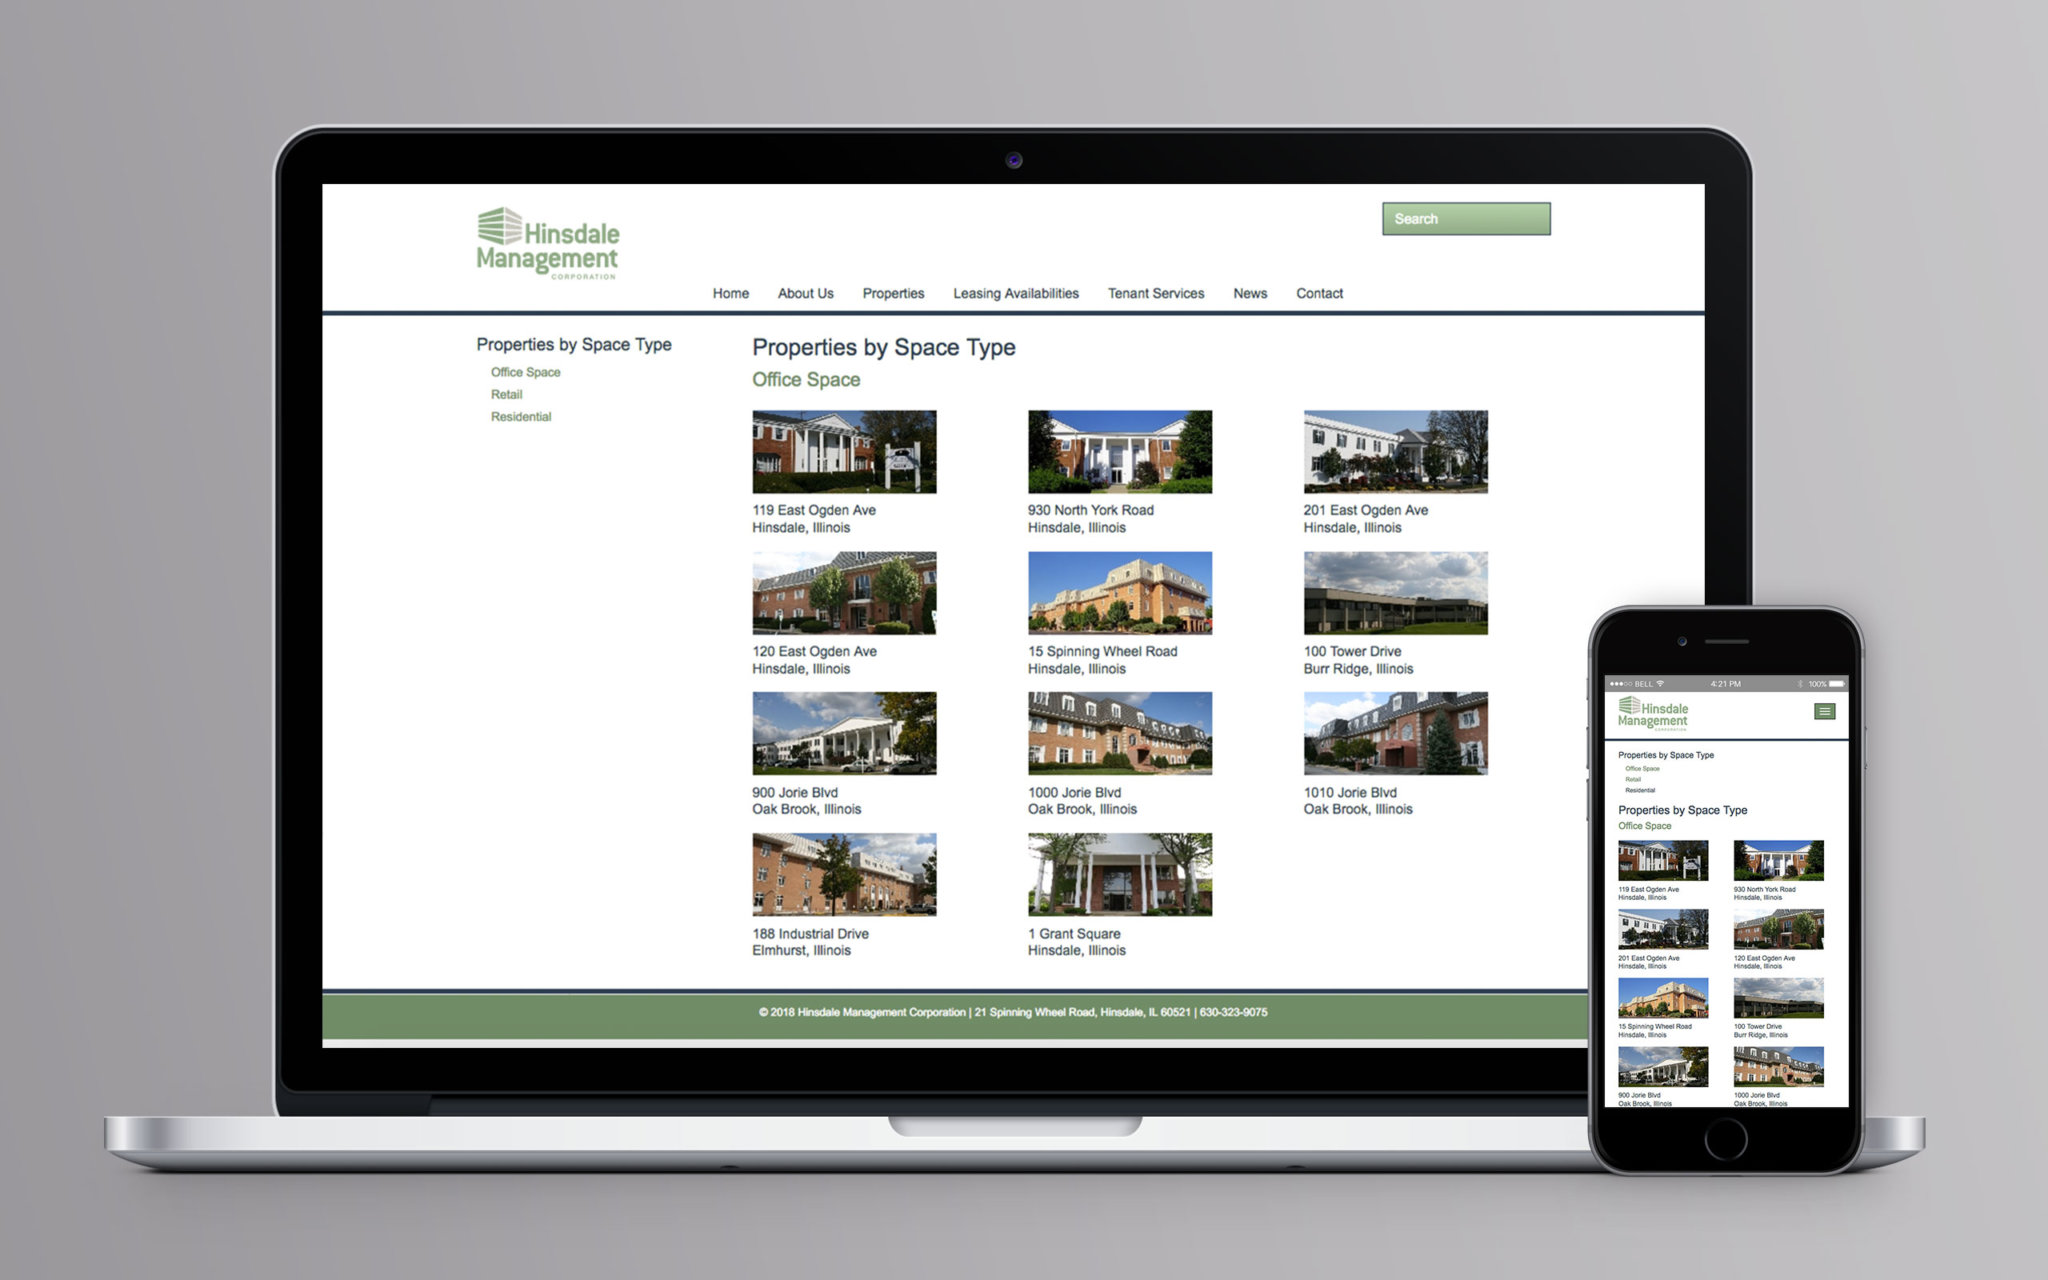 Hinsdale Management Corporation Website Space Type